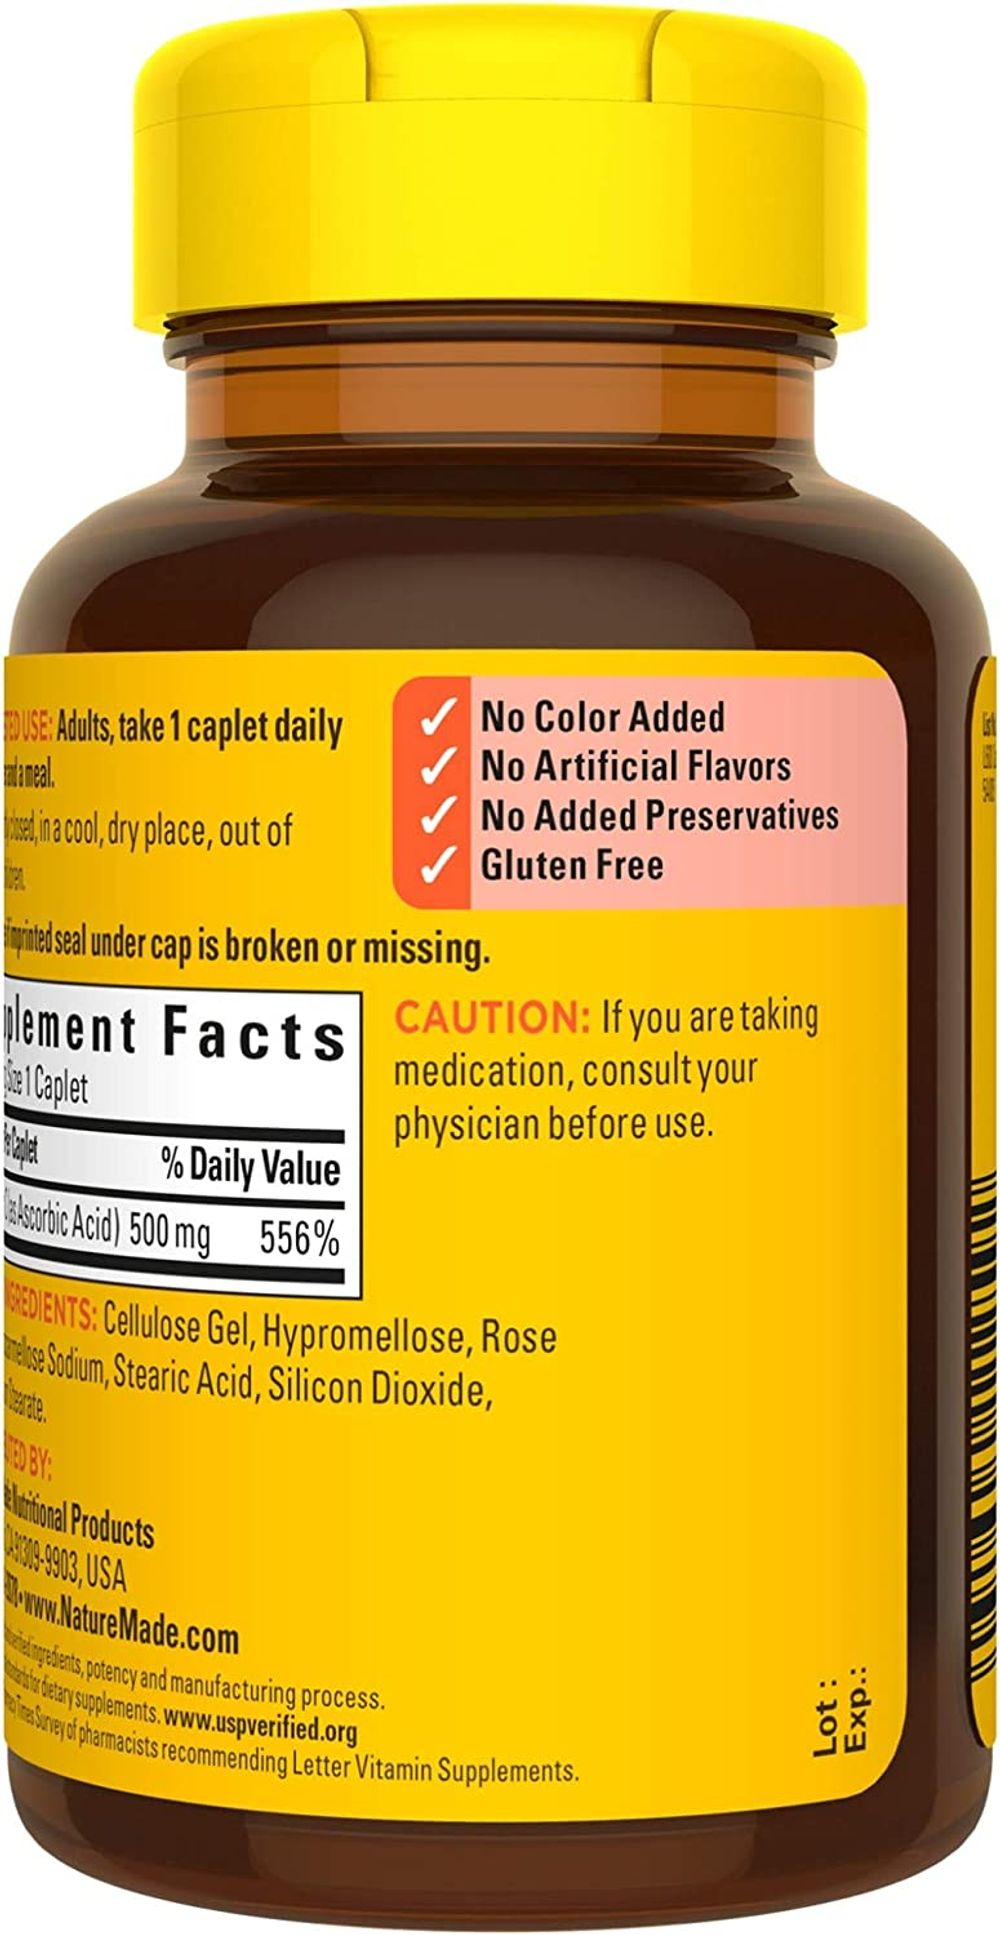 Nature Made Vitamin C 500 mg with Rose Hips, Dietary Supplement for Immune Support, 130 Caplets, 130 Day Supply